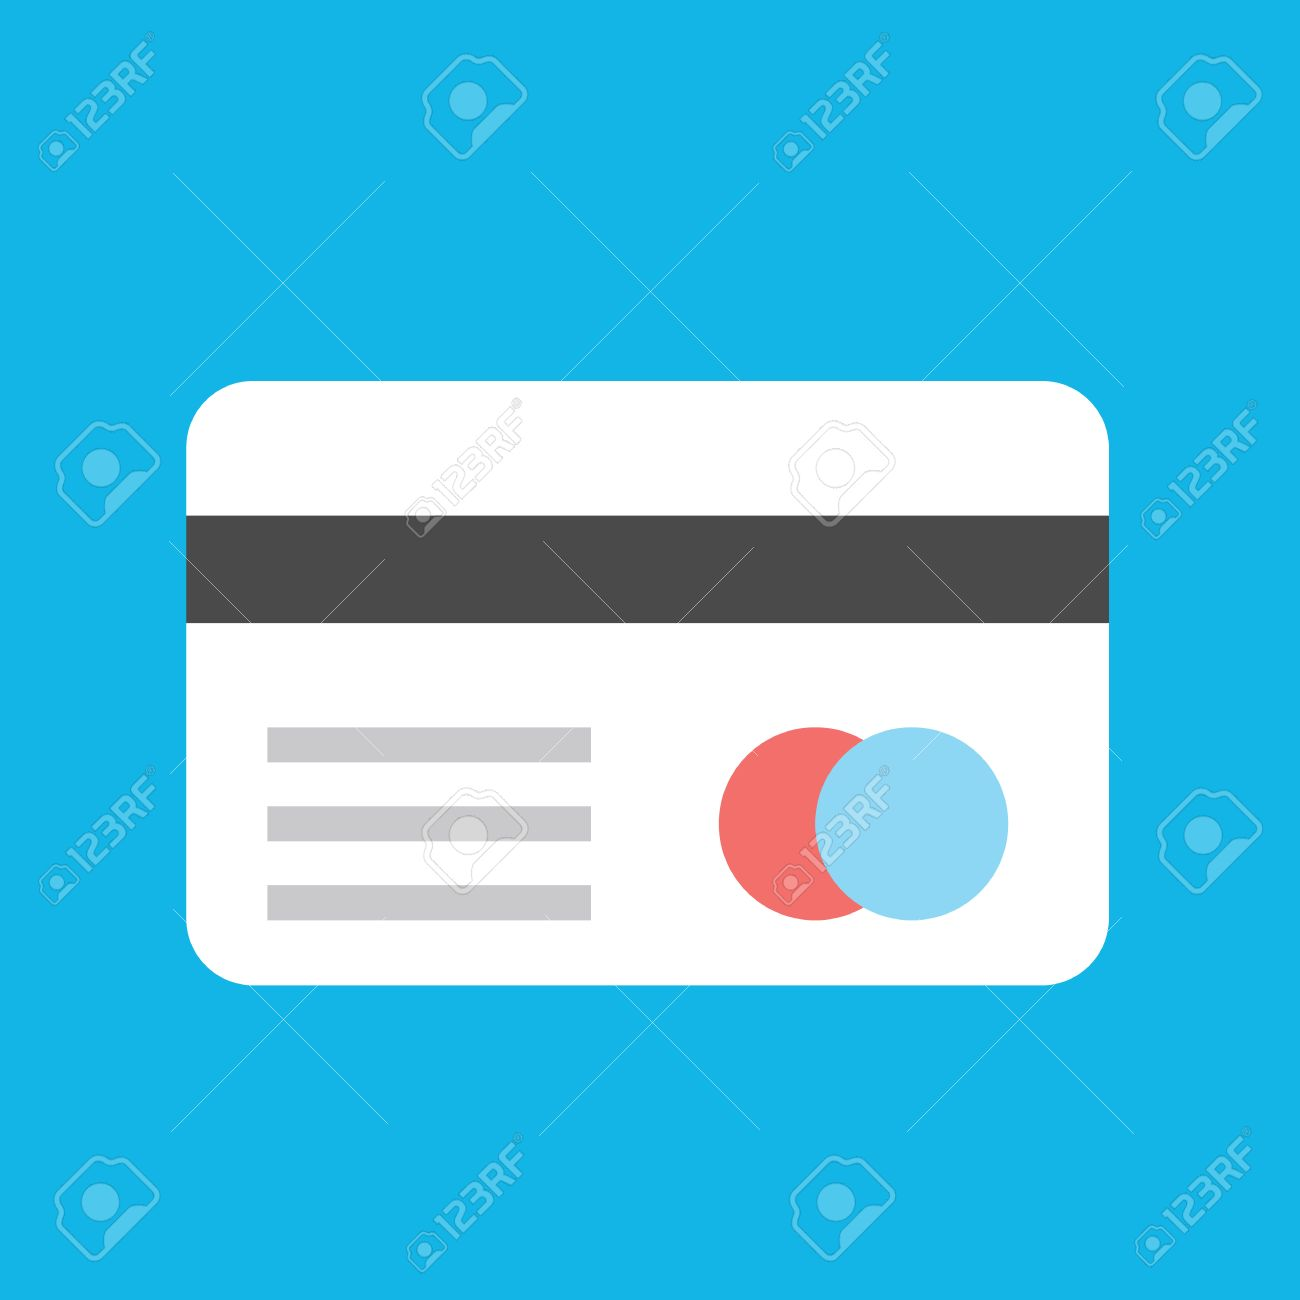 Vector Credit Card Icon Royalty Free Cliparts, Vectors, And Stock ...